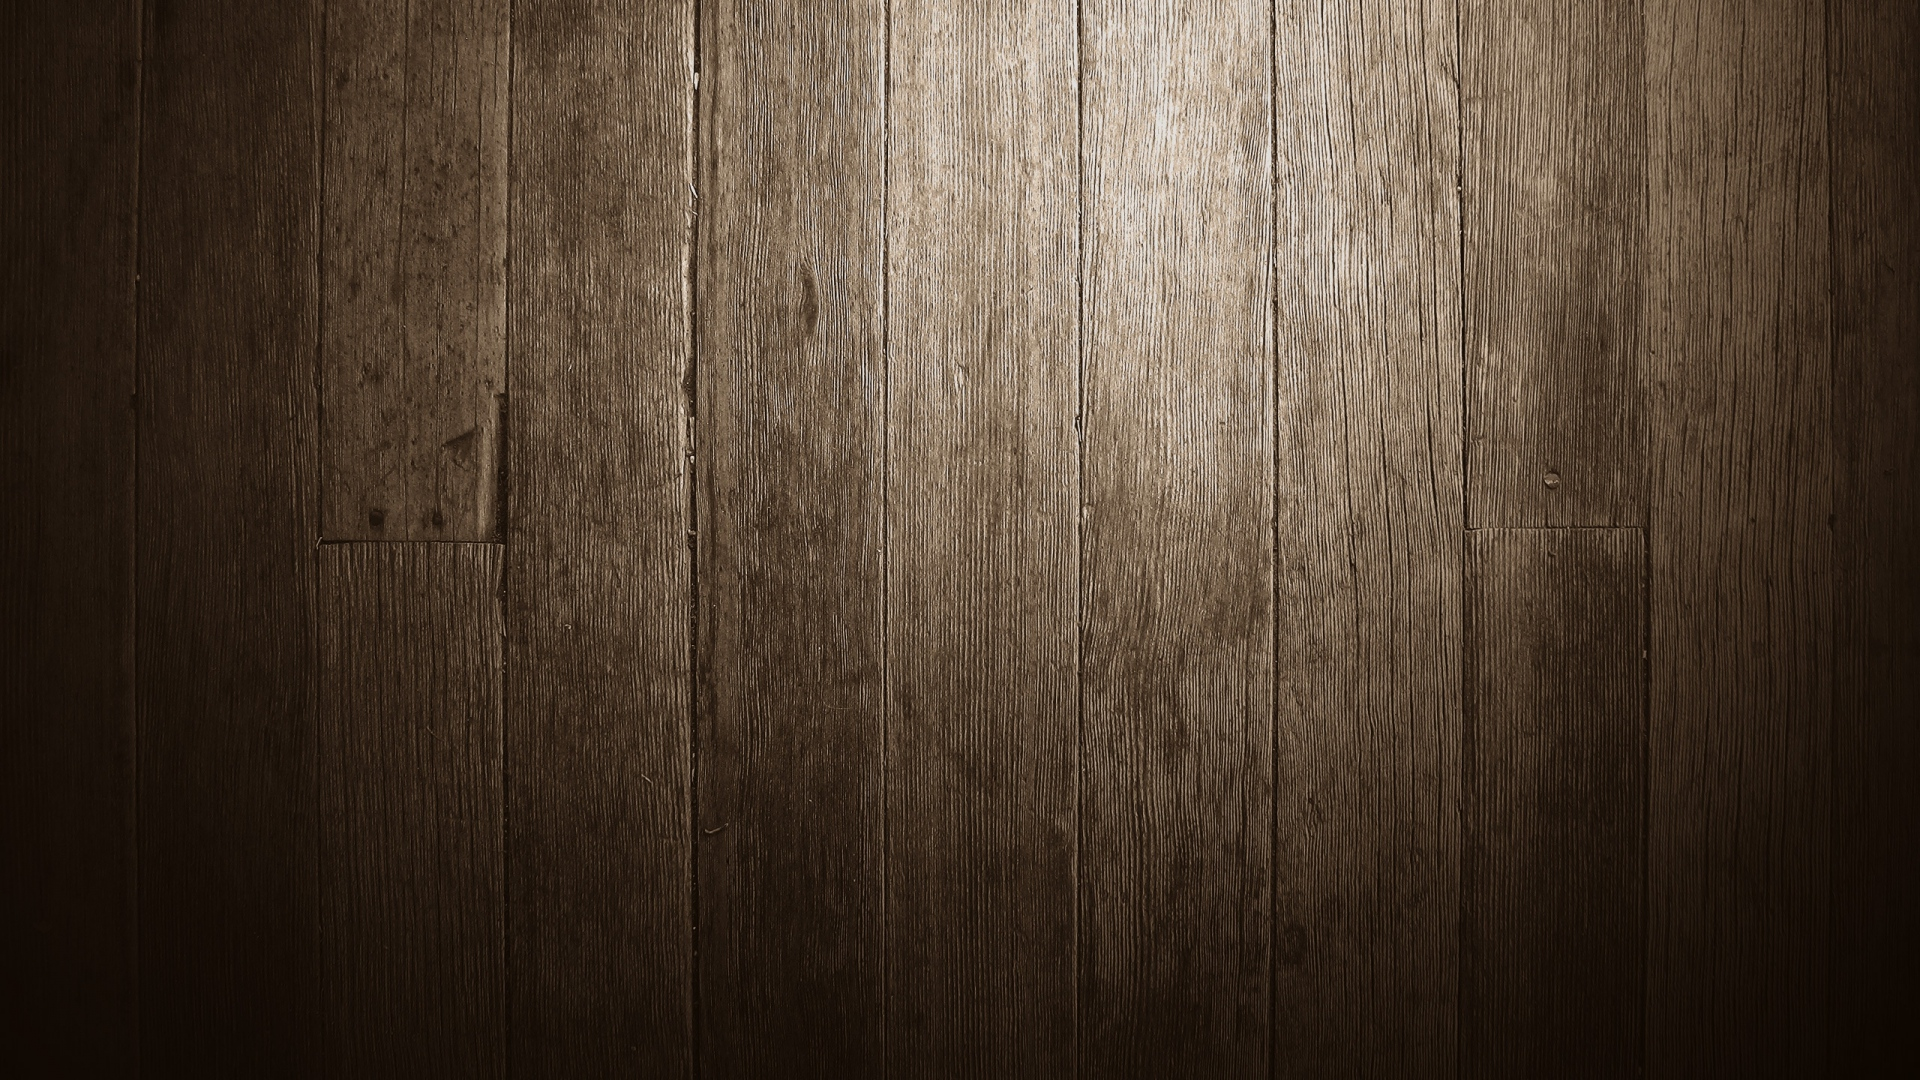 Download Wallpaper 1920x1080 Background Wood Surface